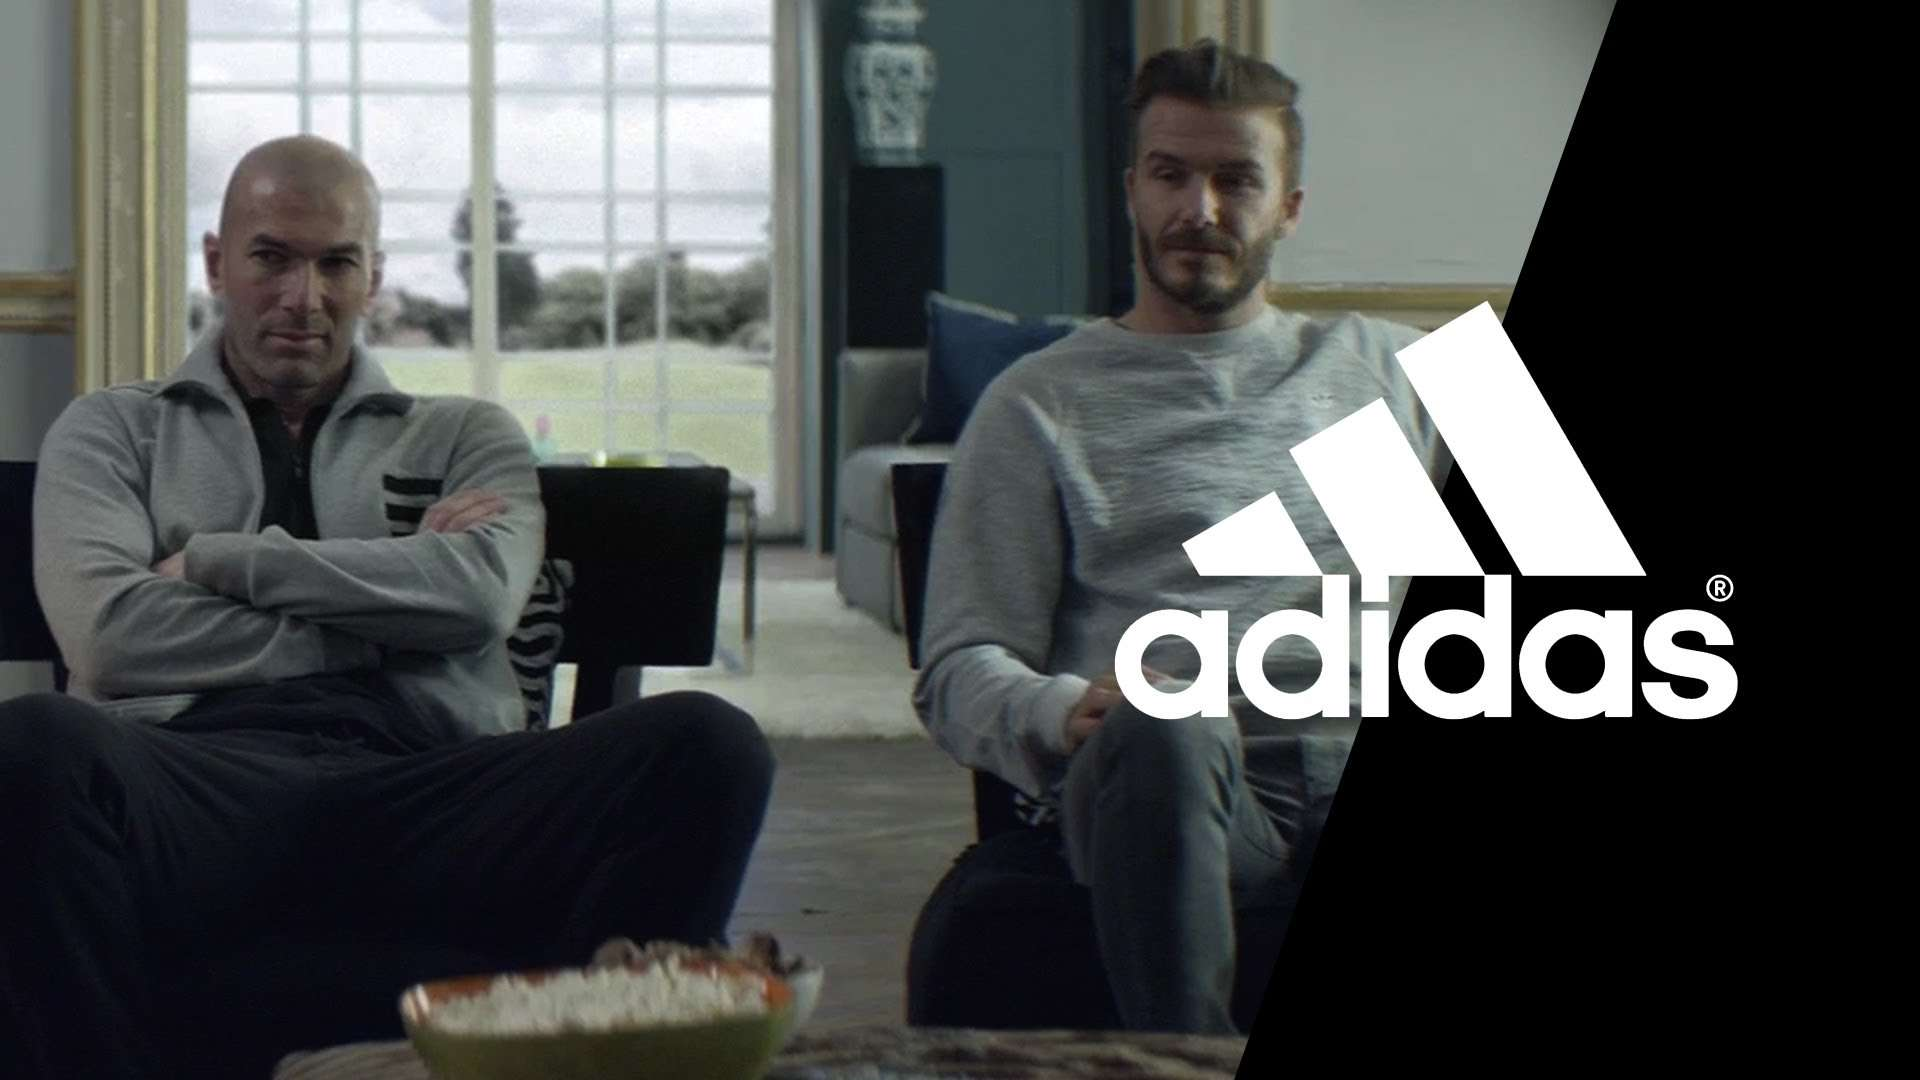 kasper rorsted while it s game over for adidas tv advertising while it s game over for adidas tv advertising here are 12 iconic spots that